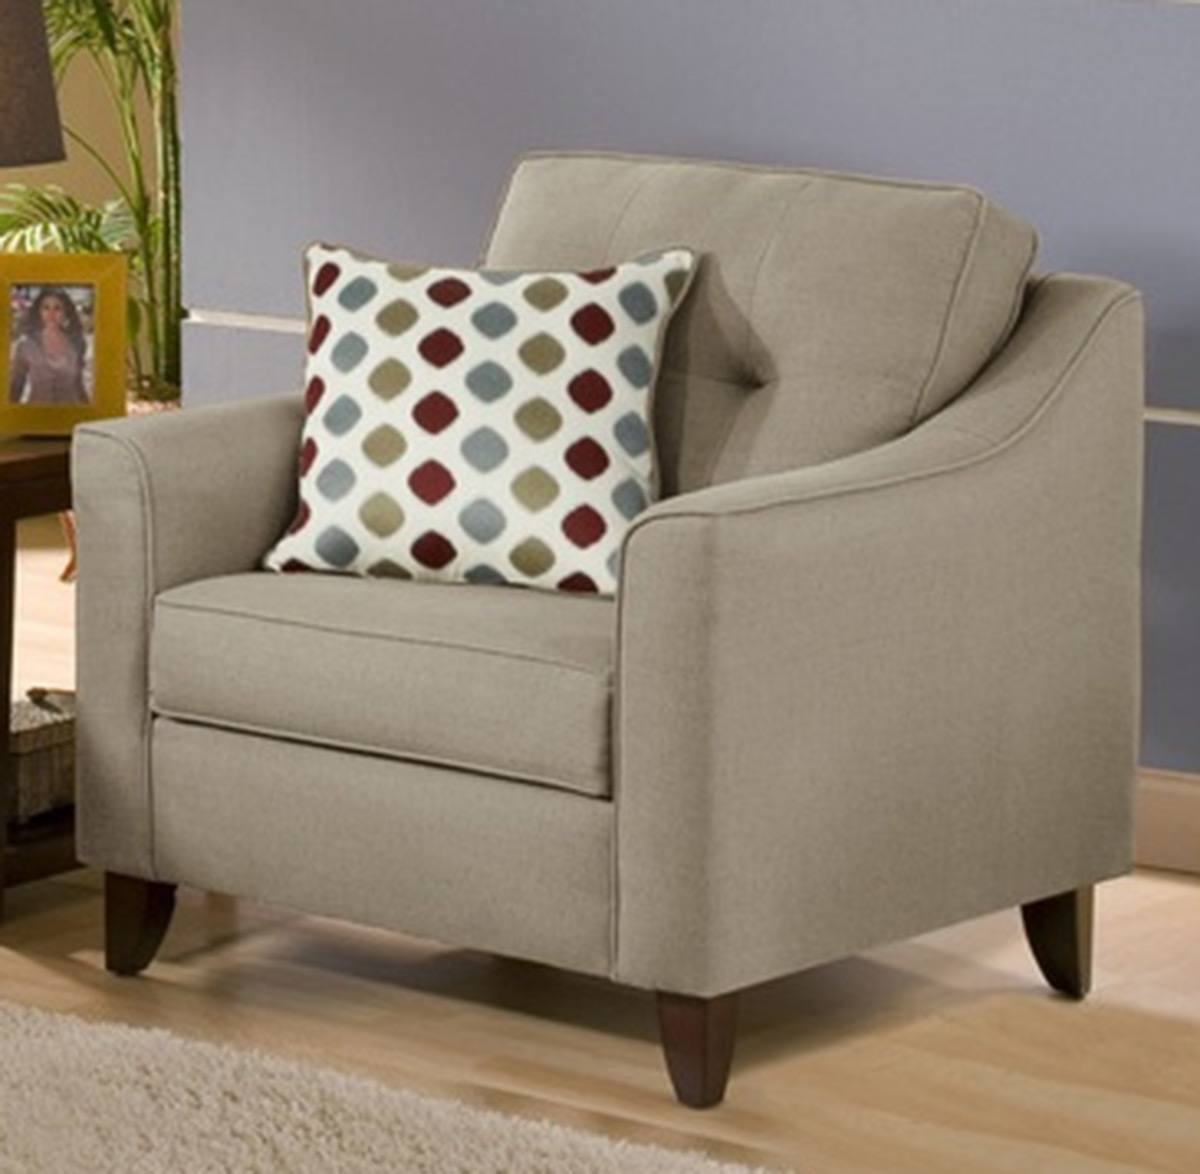 Chelsea Home Arabella Accent Chair - Stoked Truffle